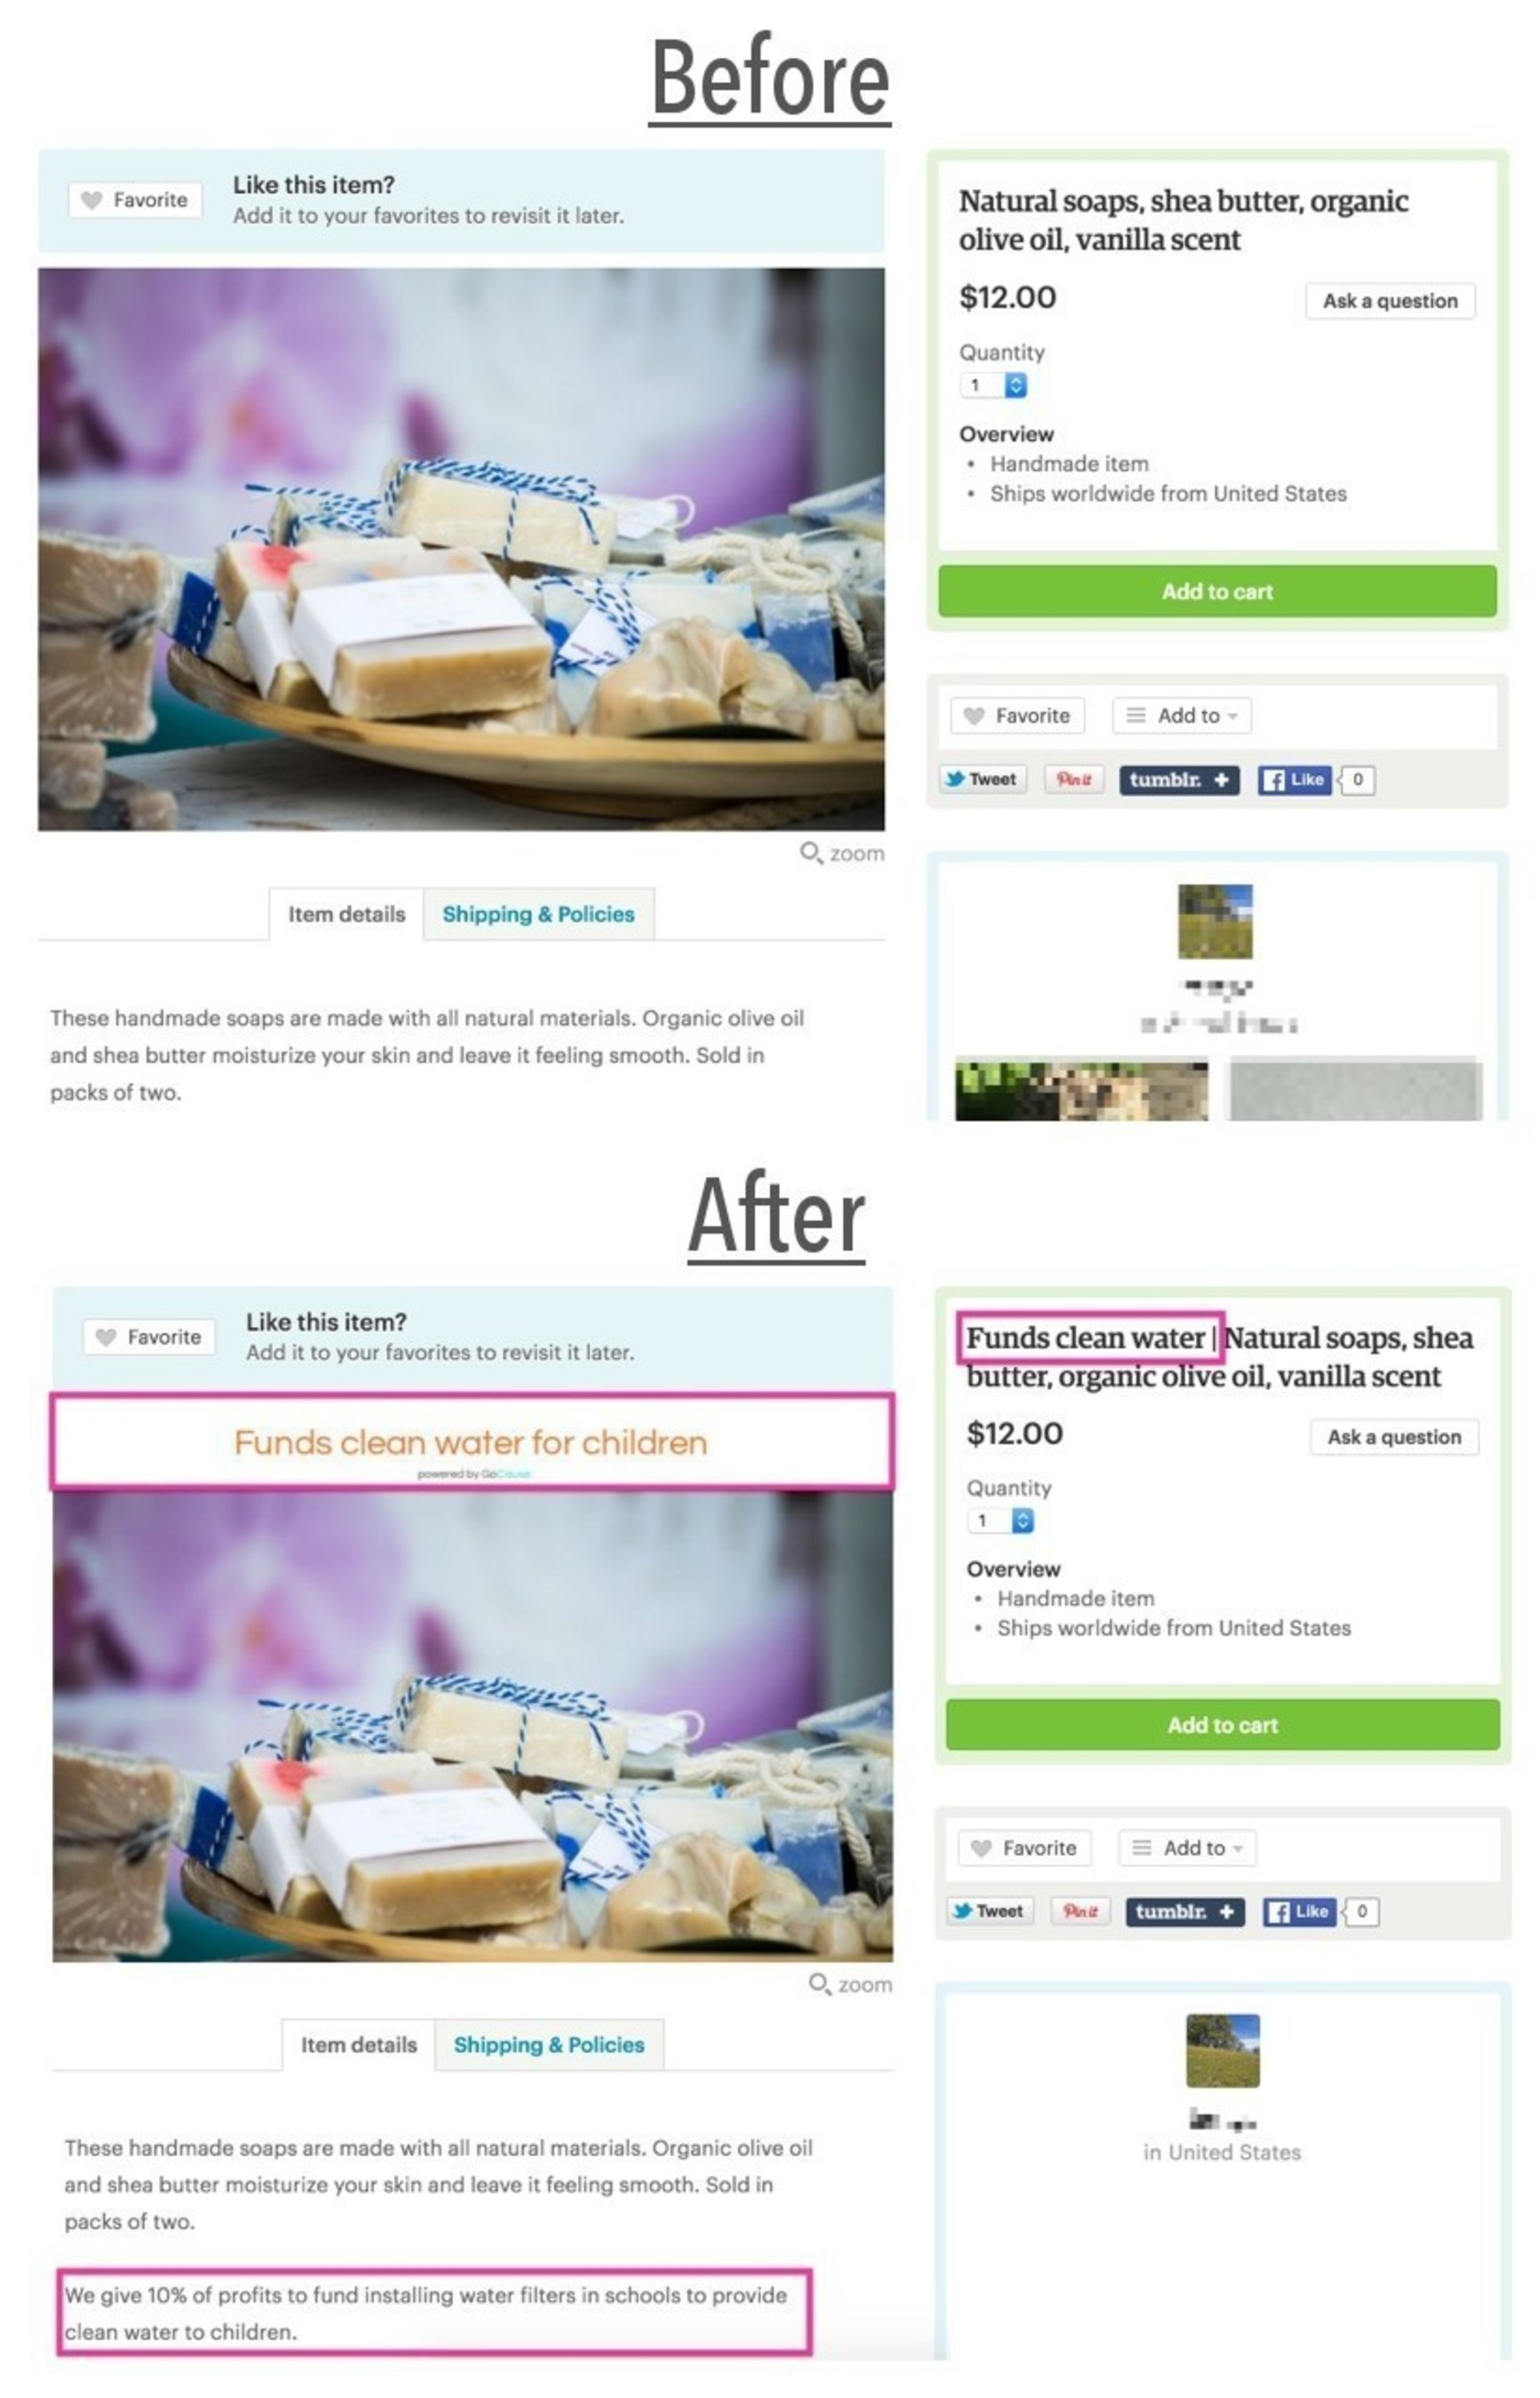 The before and after of a product listing on Etsy using the GoCause app to support a cause.